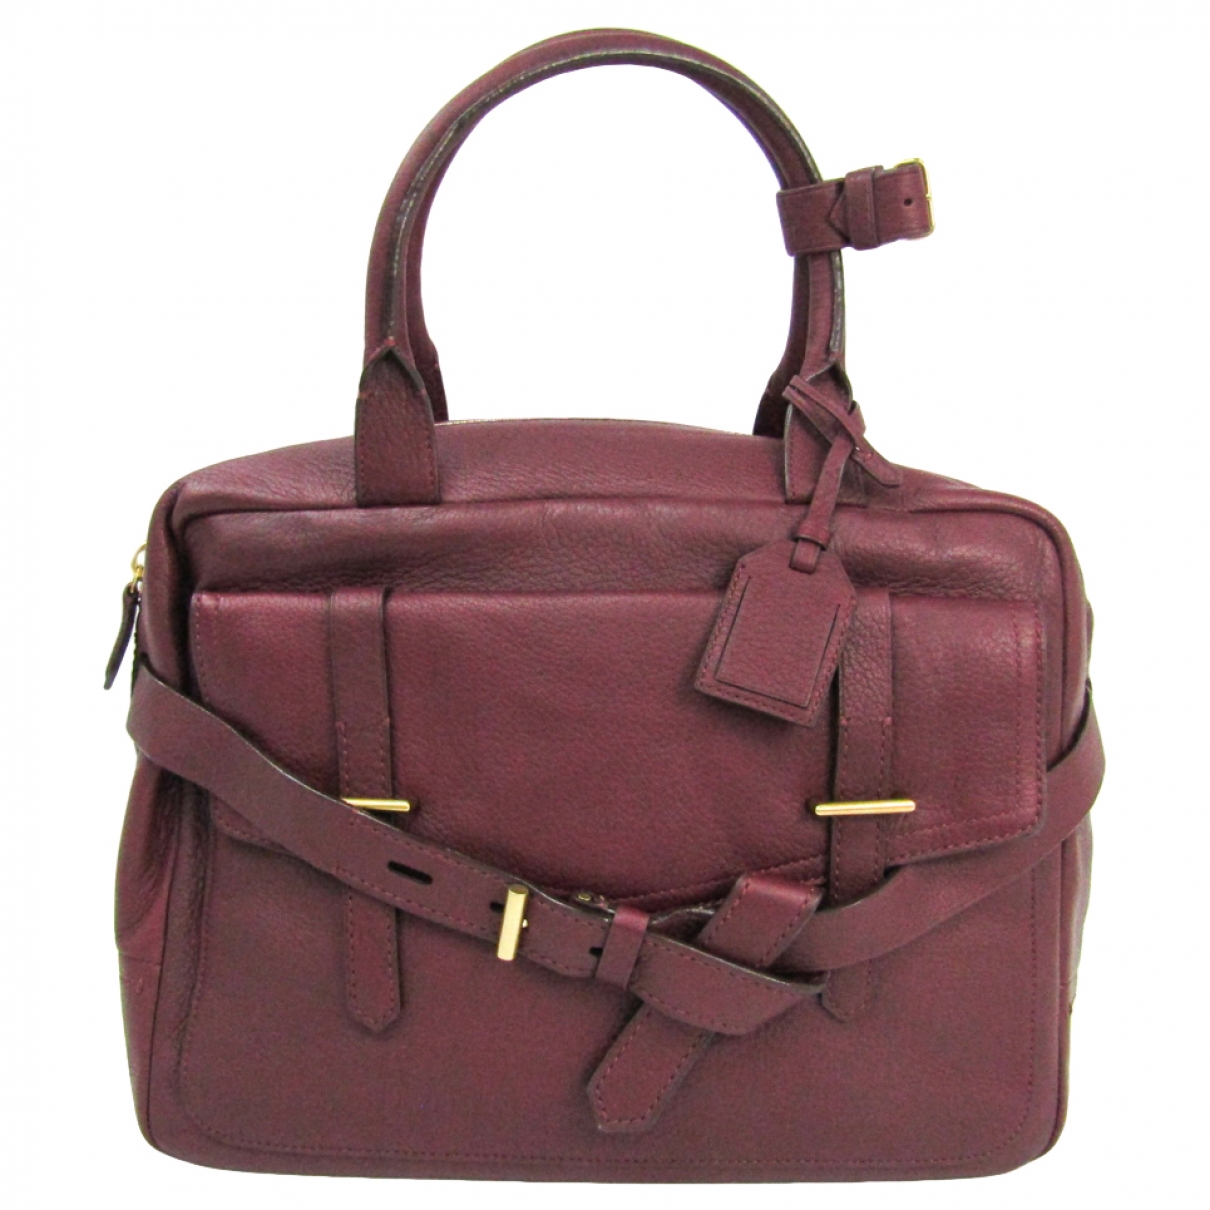 Reed Krakoff \N Burgundy Leather handbag for Women \N